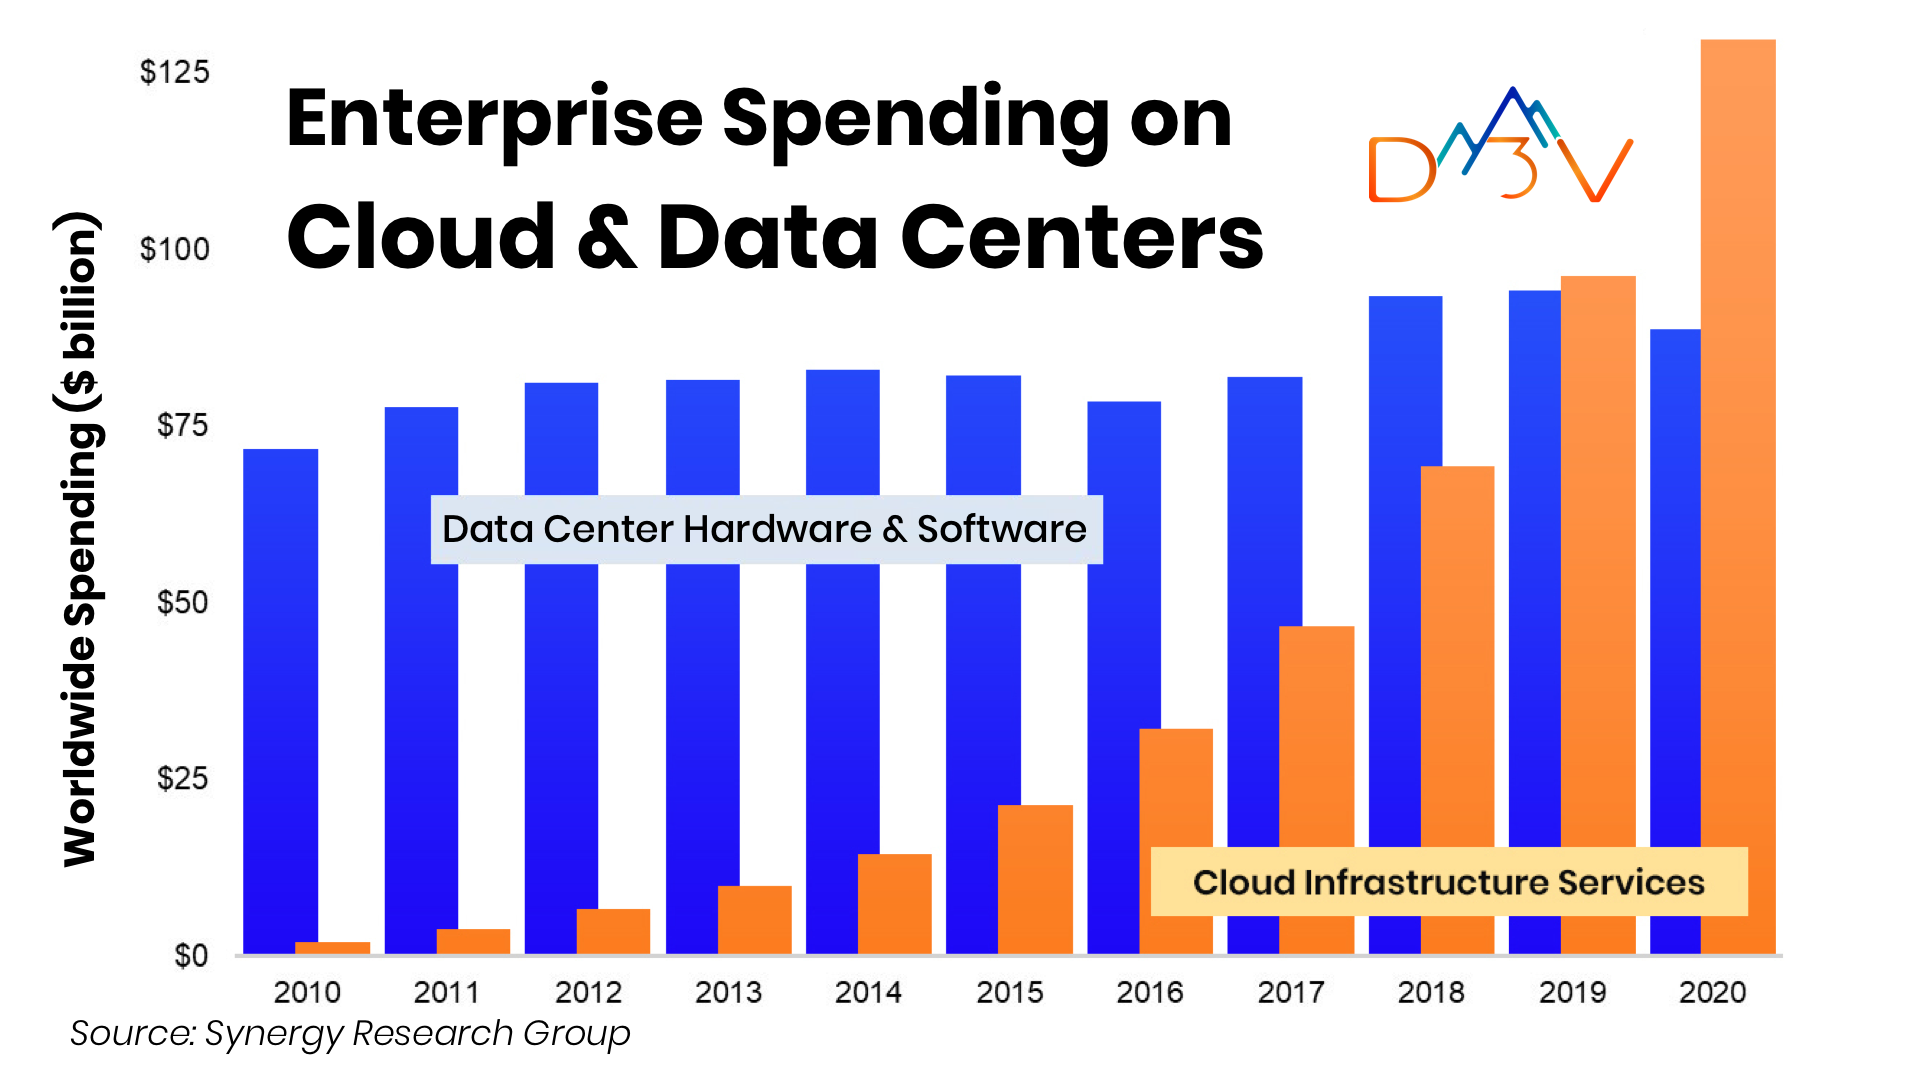 Cloud overtakes on-prem data centers in 2020-sees biggest growth in 10 years